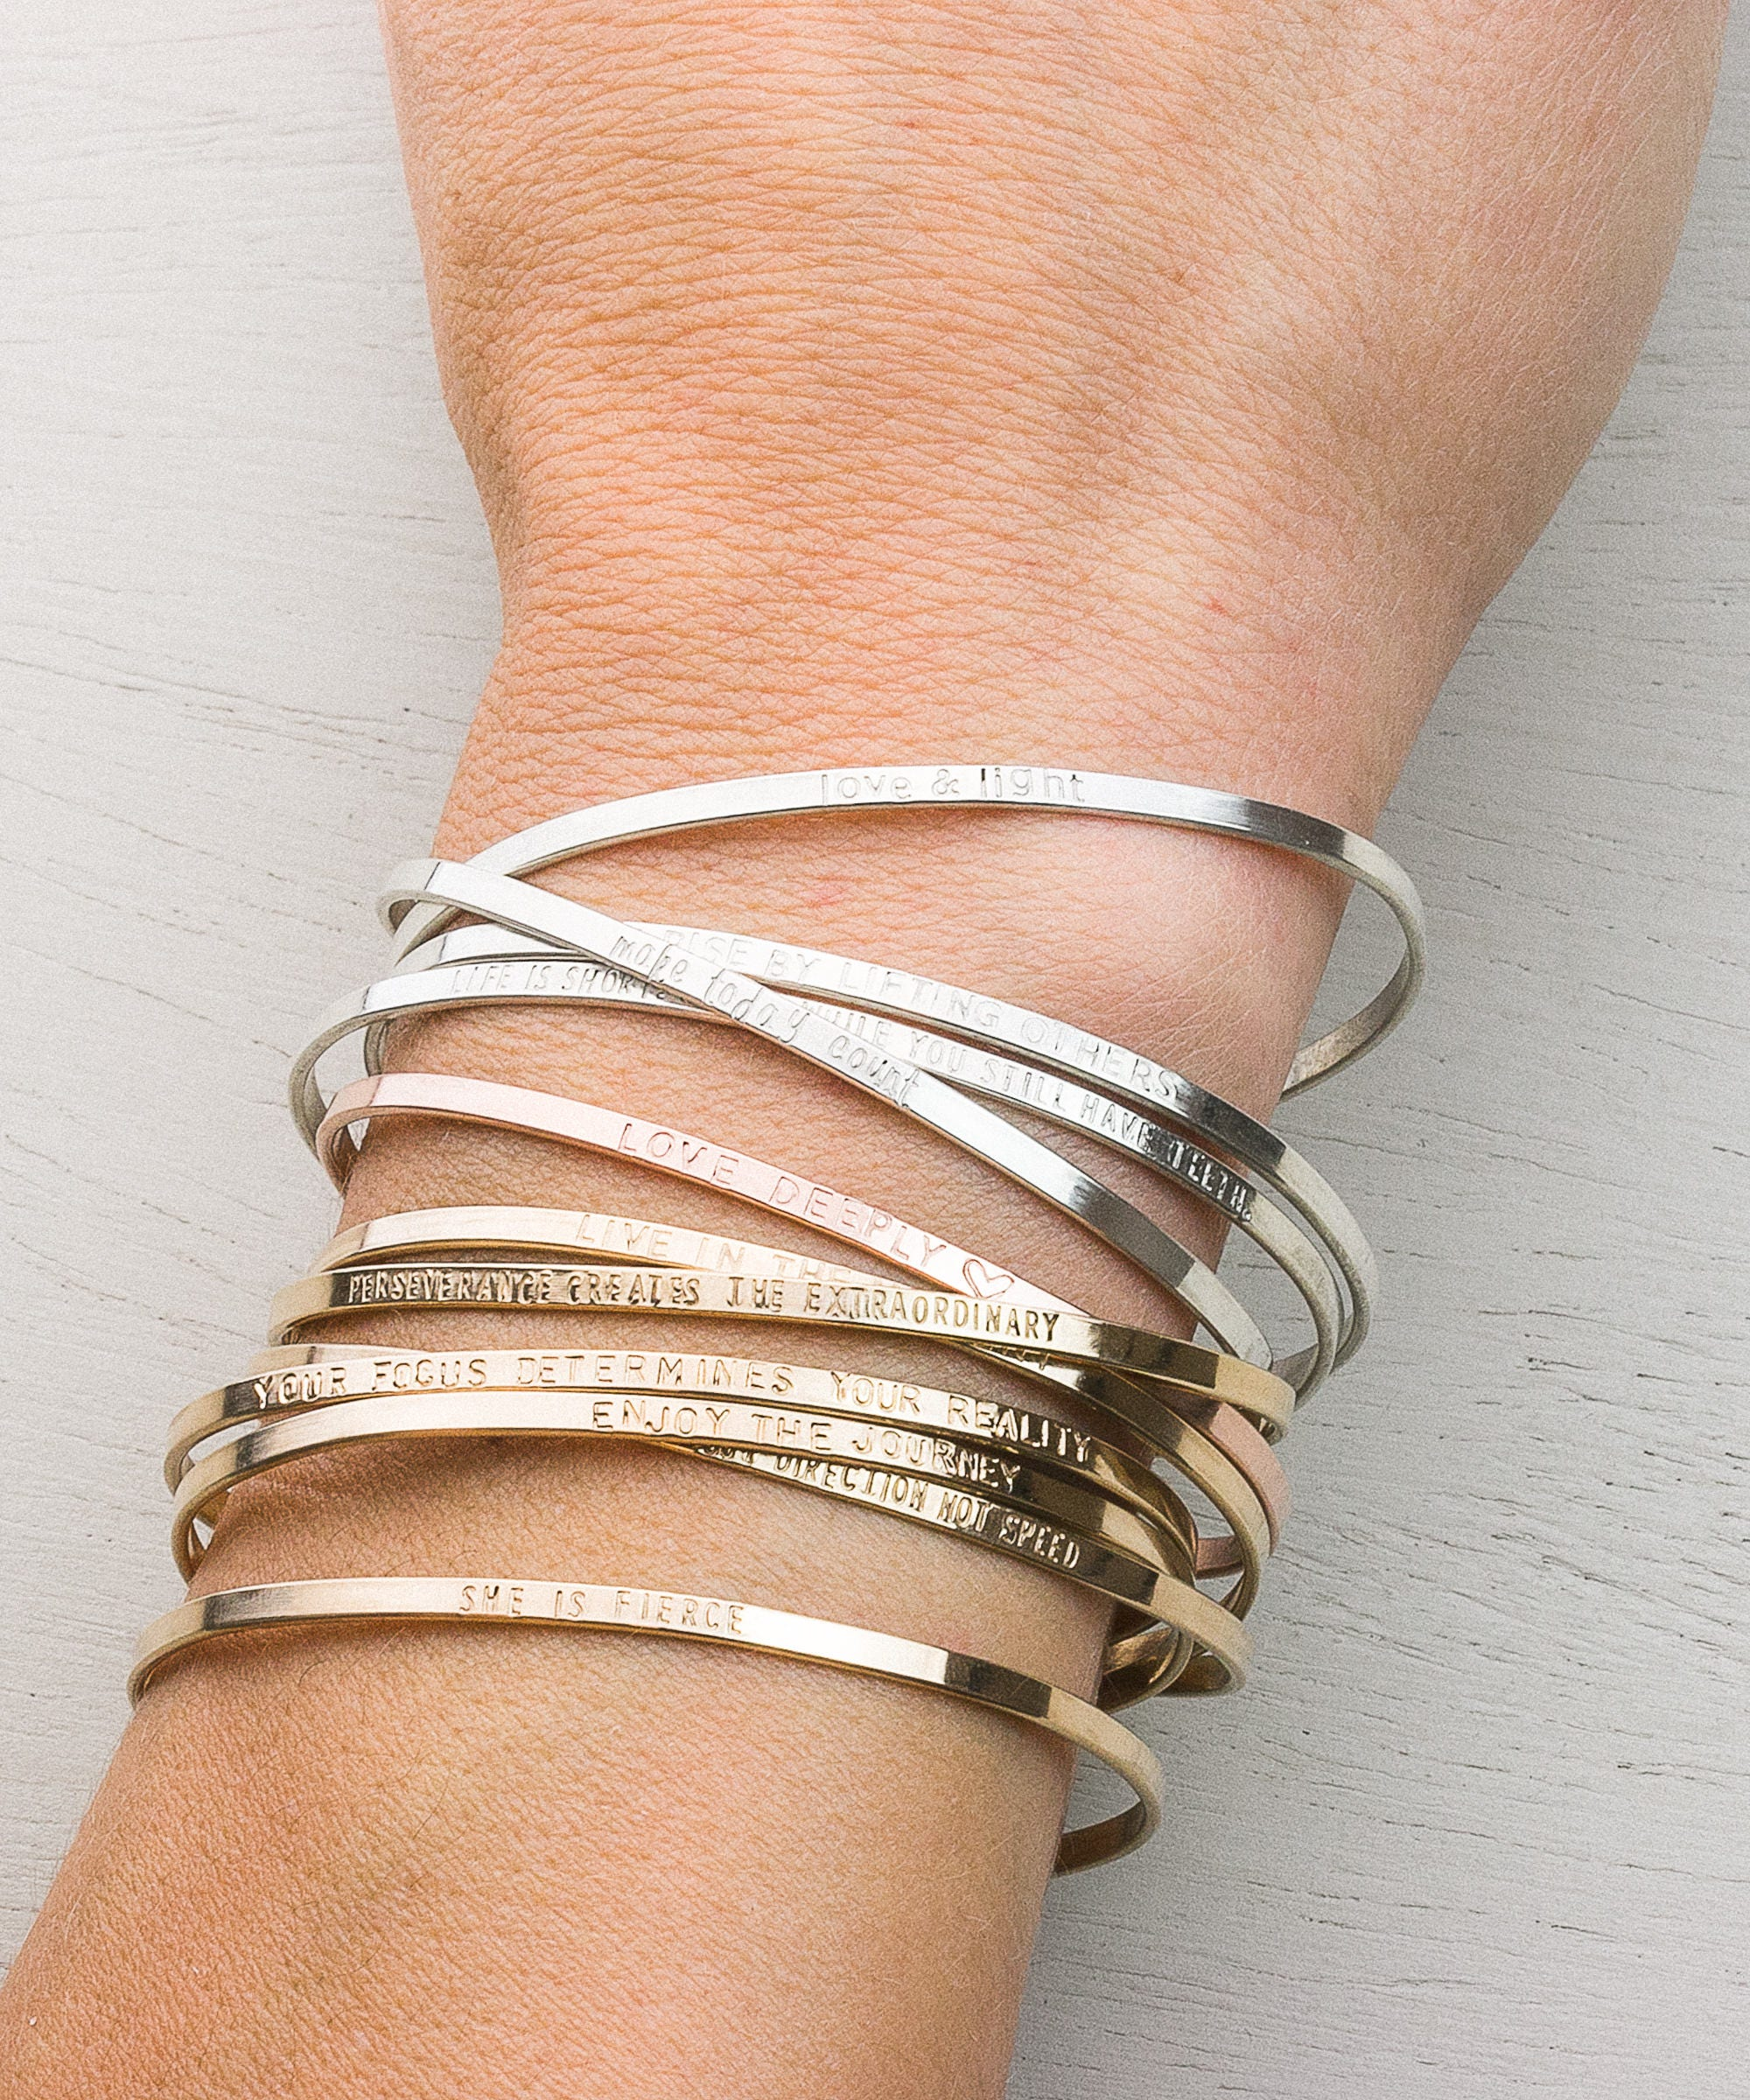 com inspiration babybox feinba fearless bangle bracelet featured at bangles